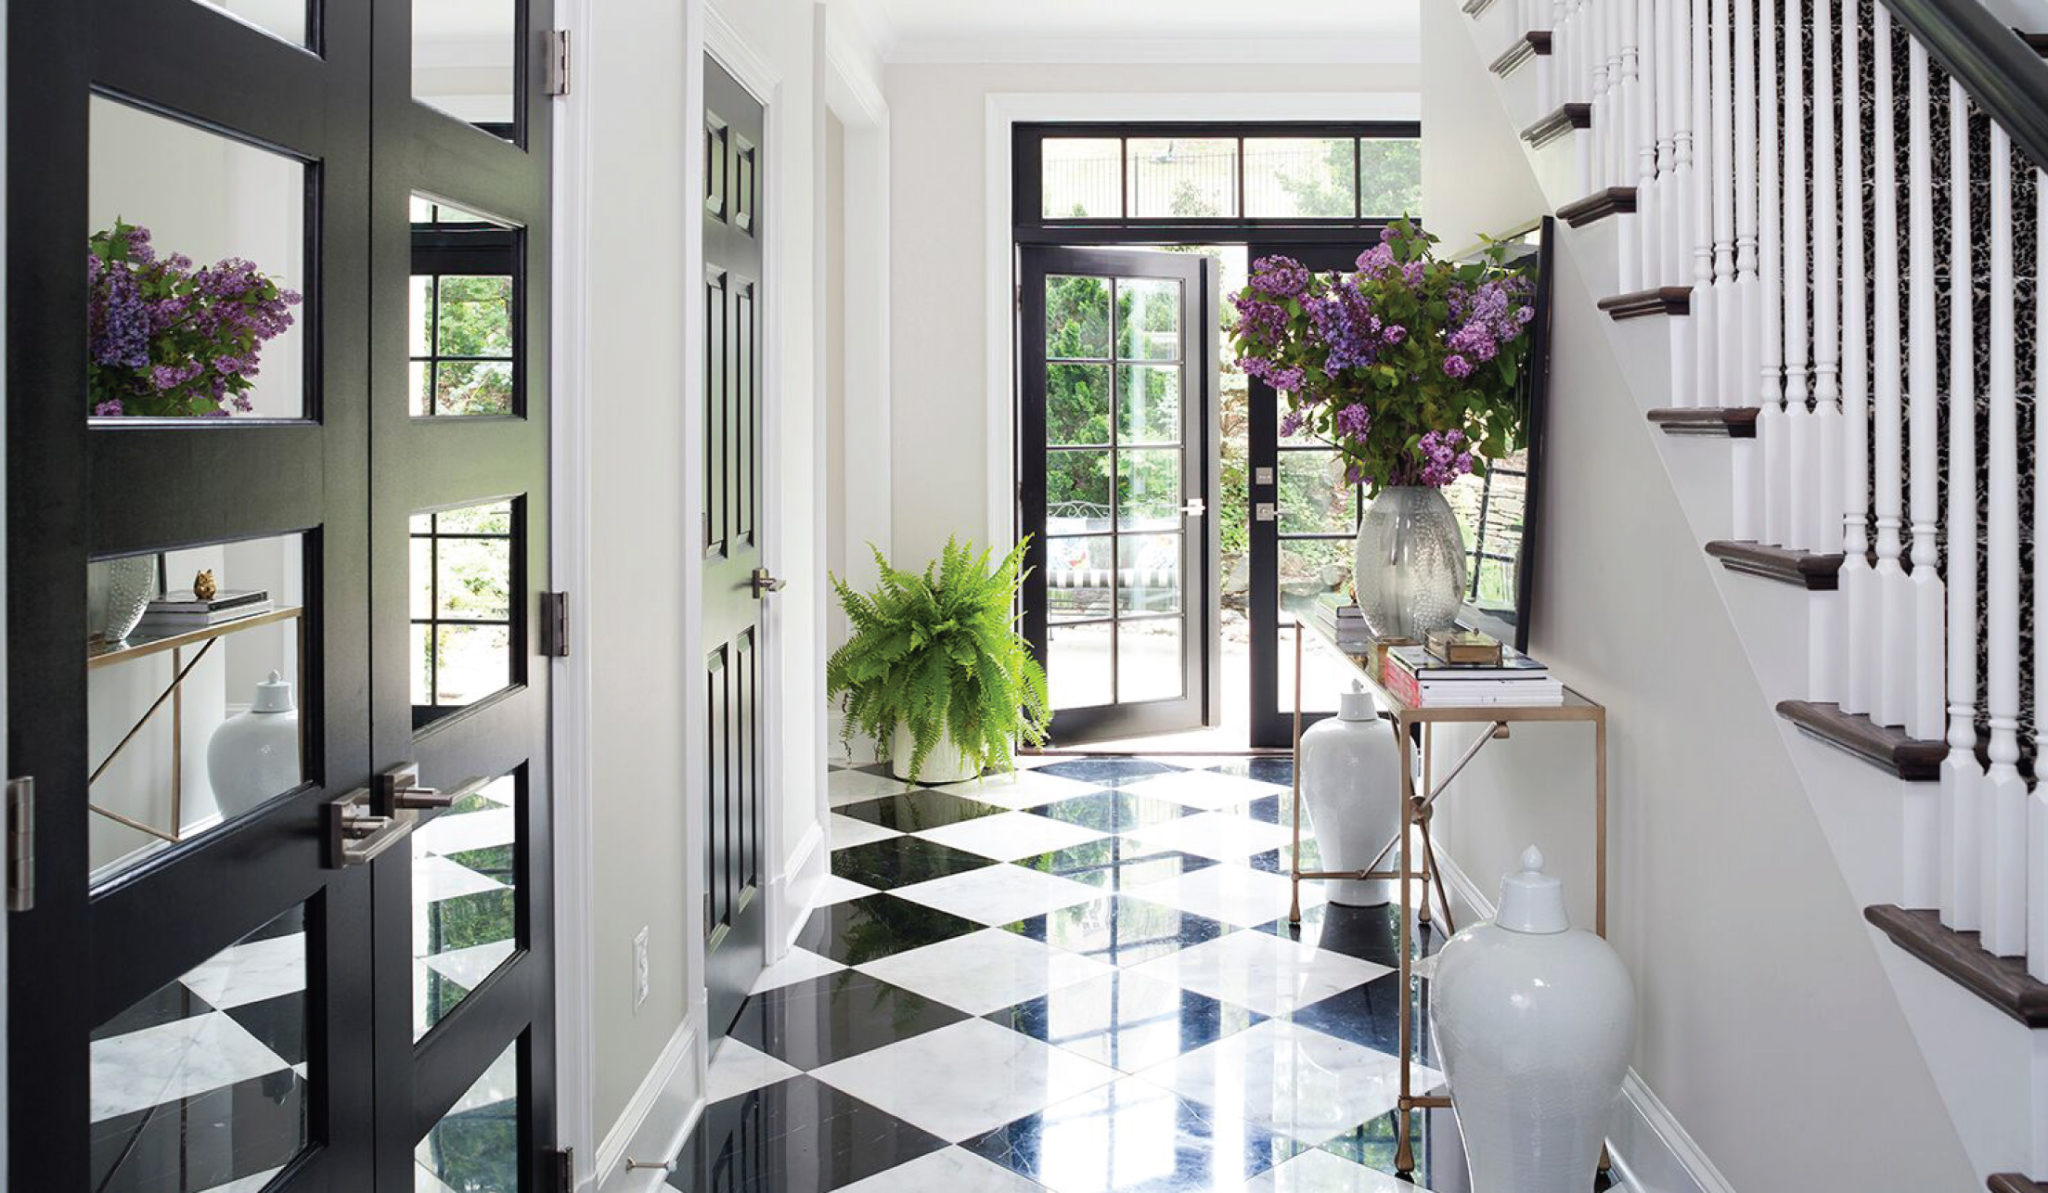 Interior Design Is A Sweet Indulgence With Classically Modern Sense Of Style Where Our Passion And Purpose Unveil Grounded Dose The